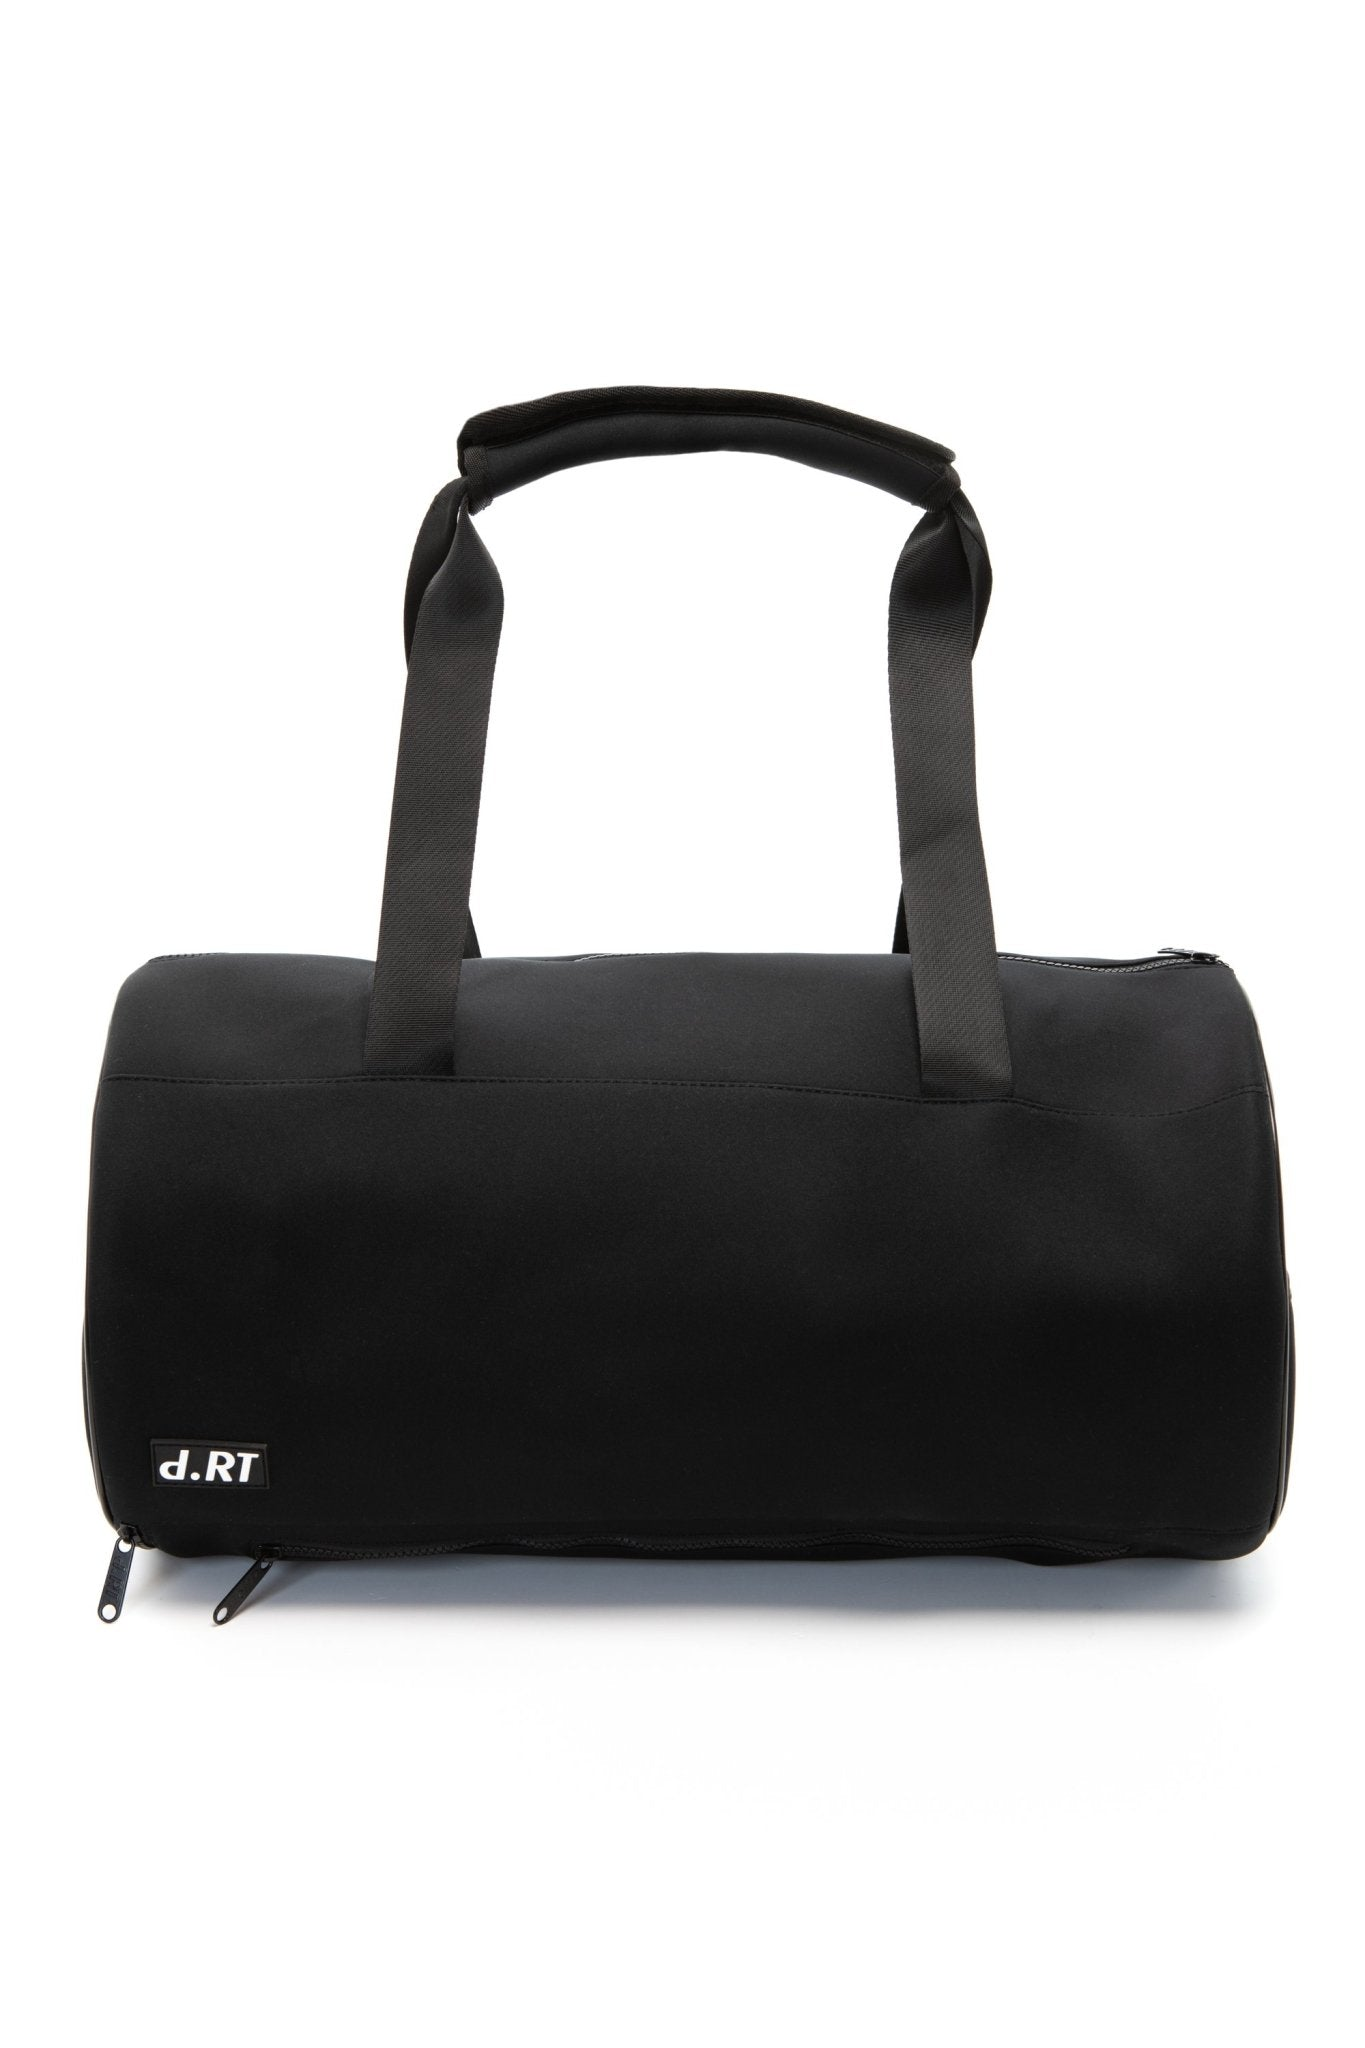 d.RT Deuces Duffel / Neighborhood Goods